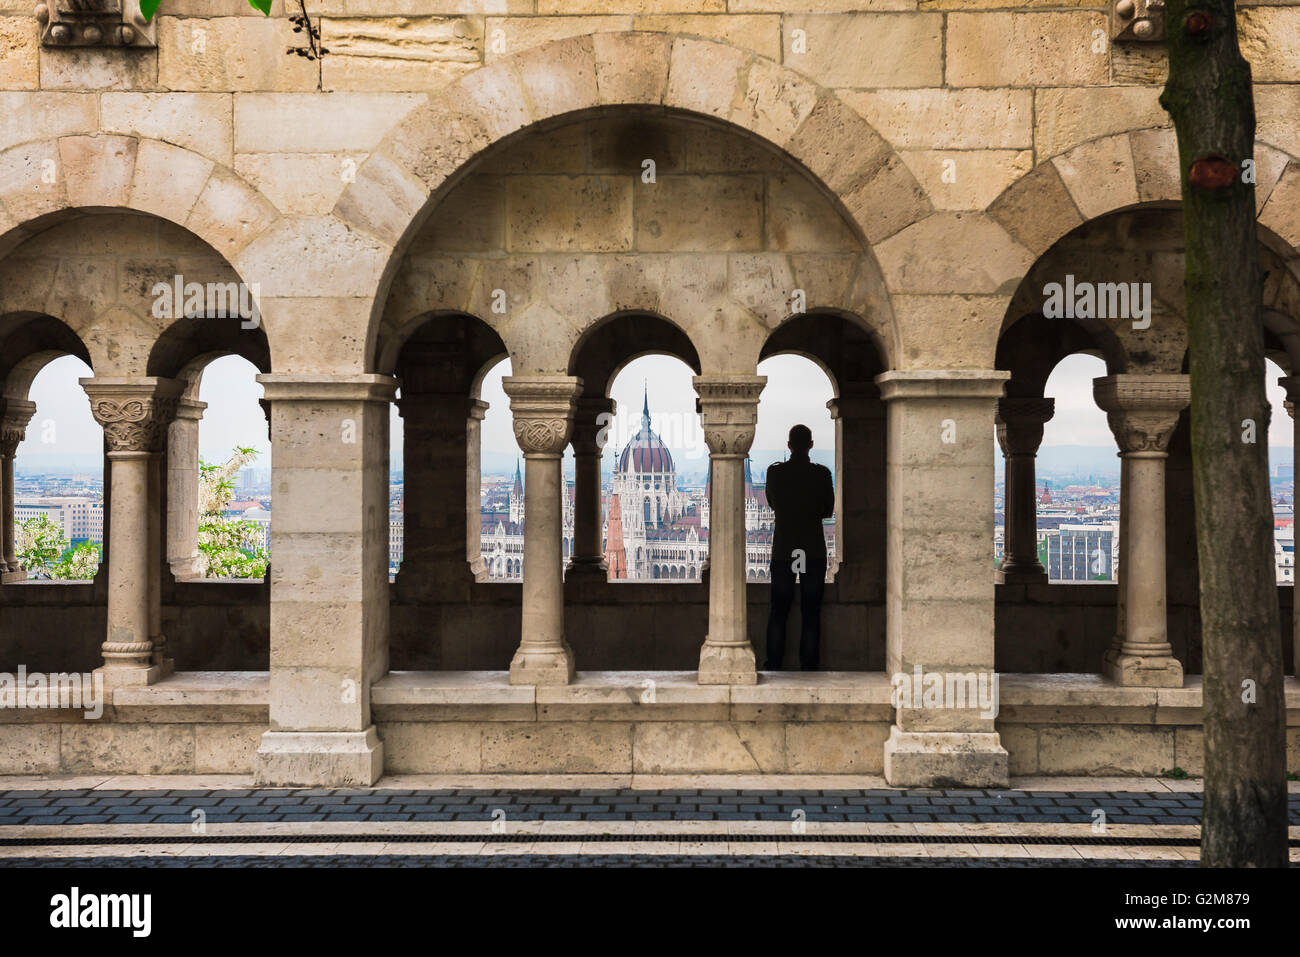 A tourist standing in a cloister in the Fishermens Bastion in Budapest looks over to the Parliament building on - Stock Image